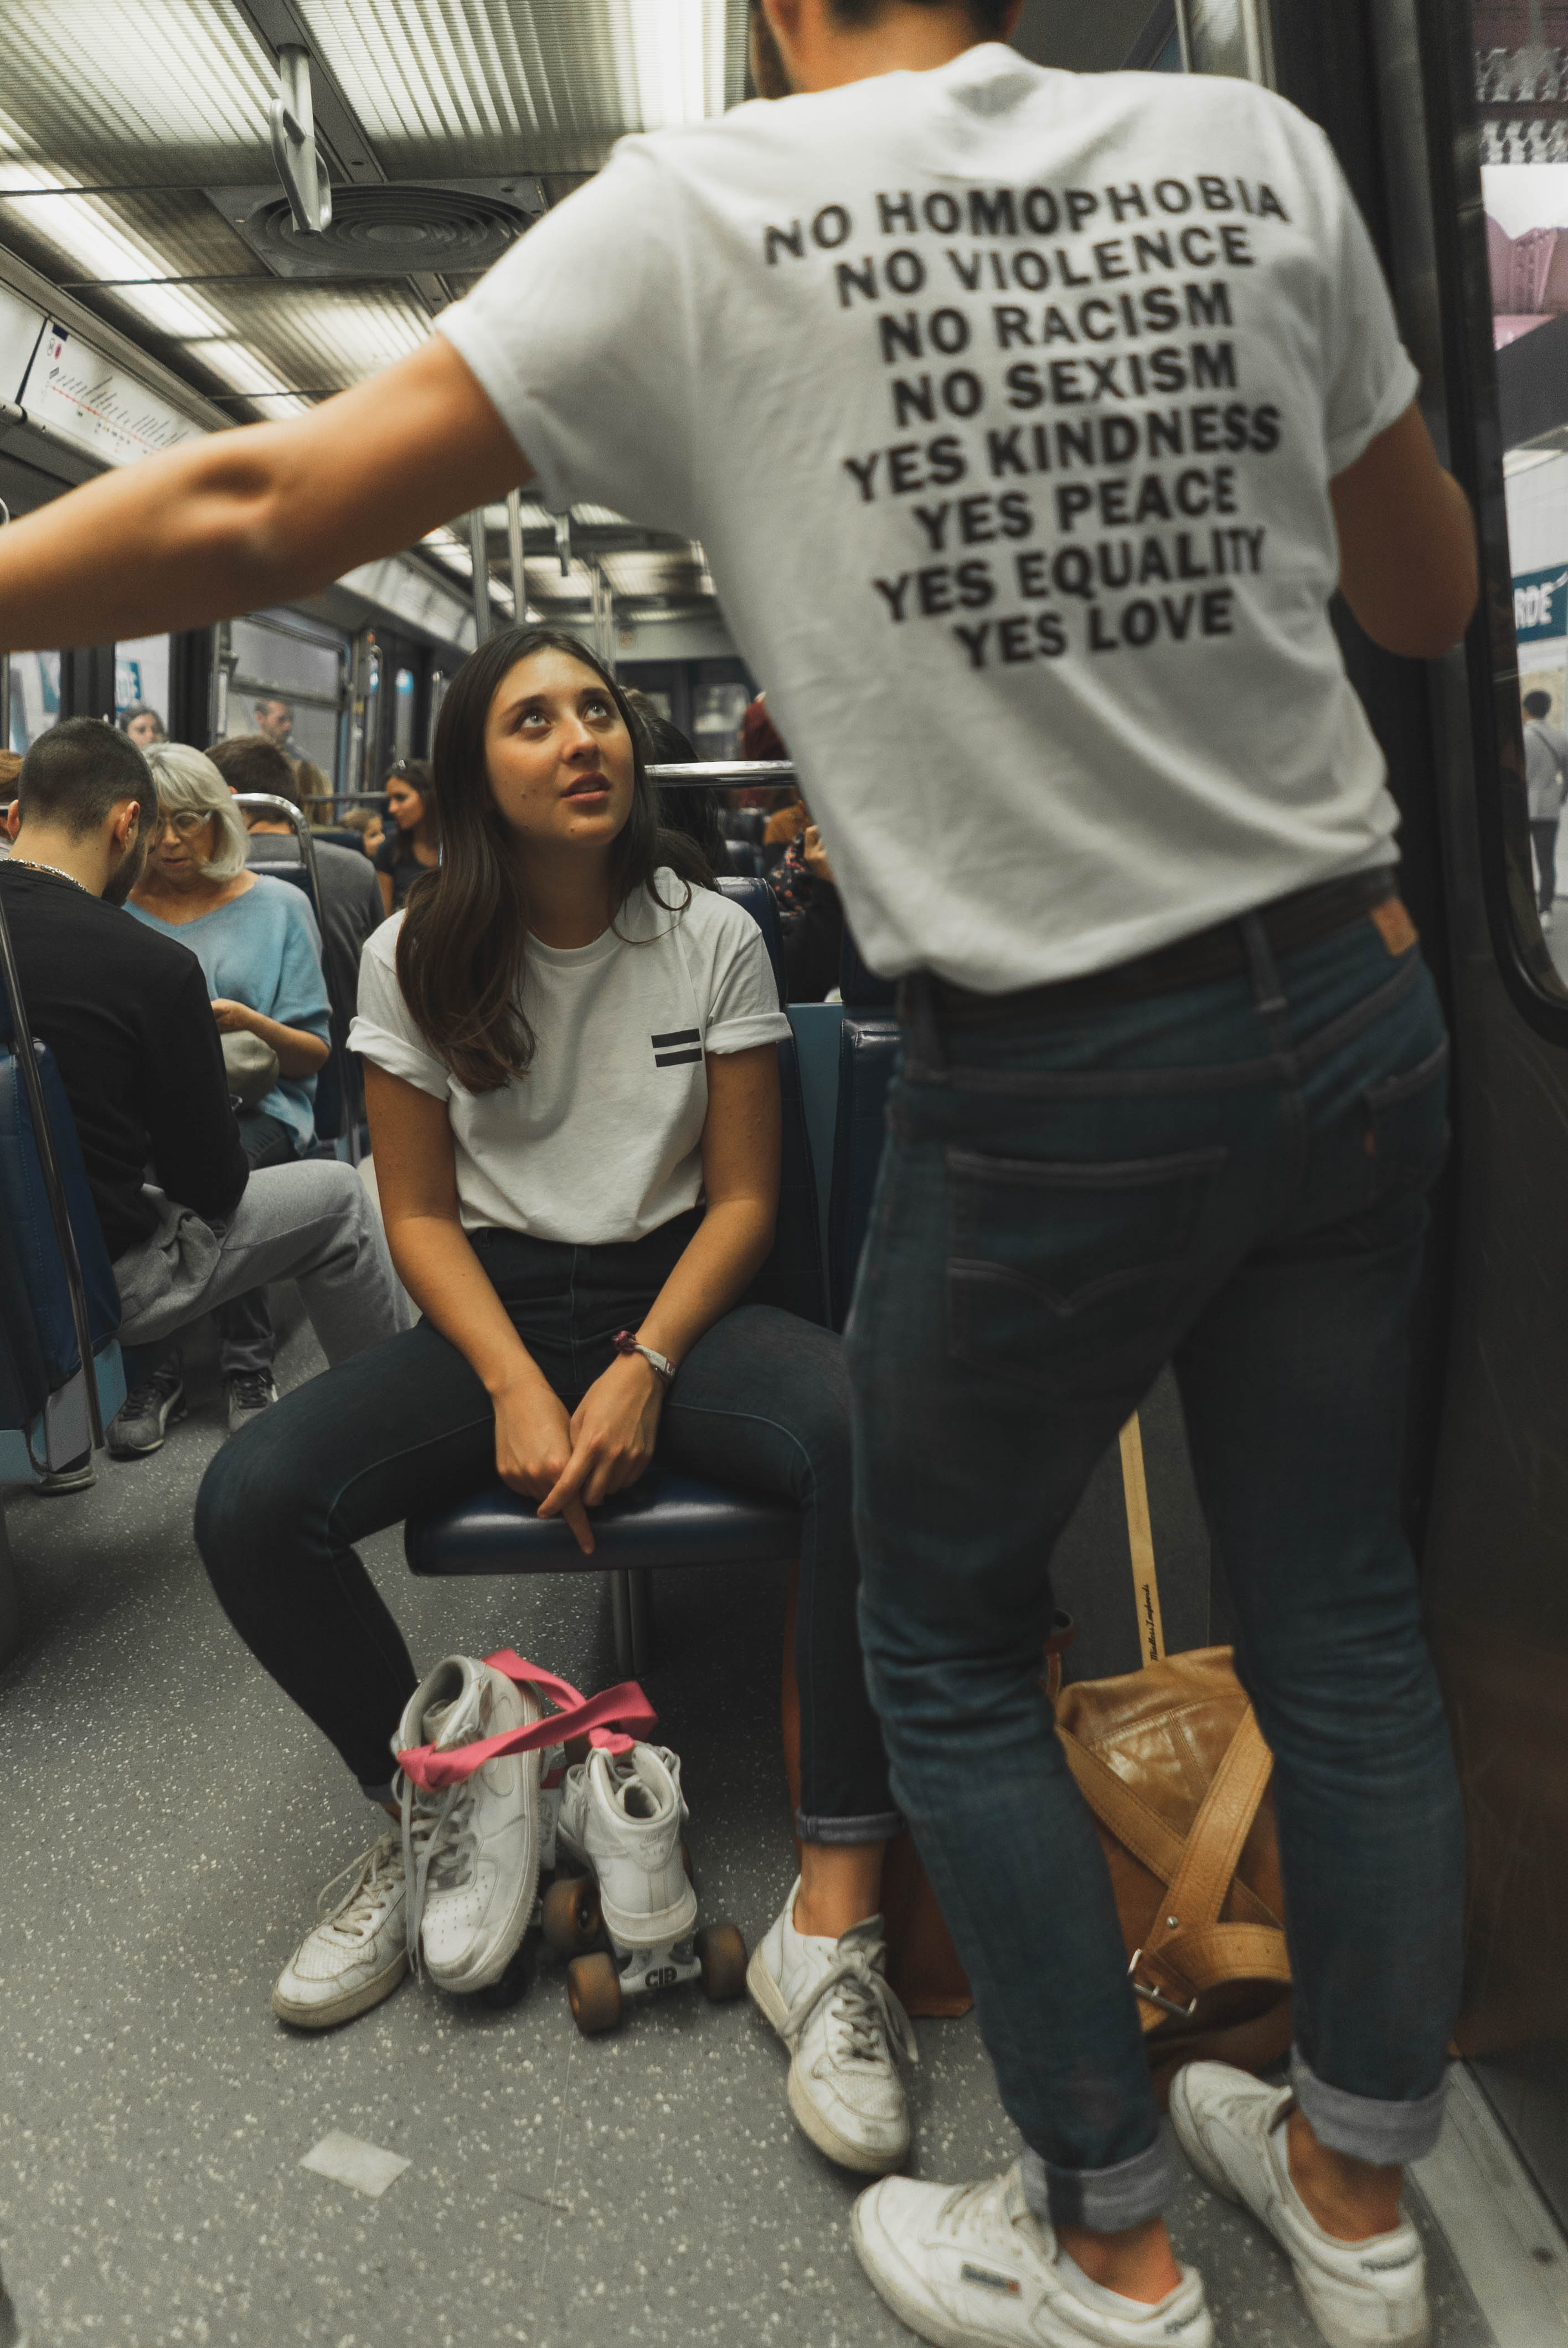 Woman Wearing White Crew-neck Shirt and Black Jeans Sitting on Train Seat